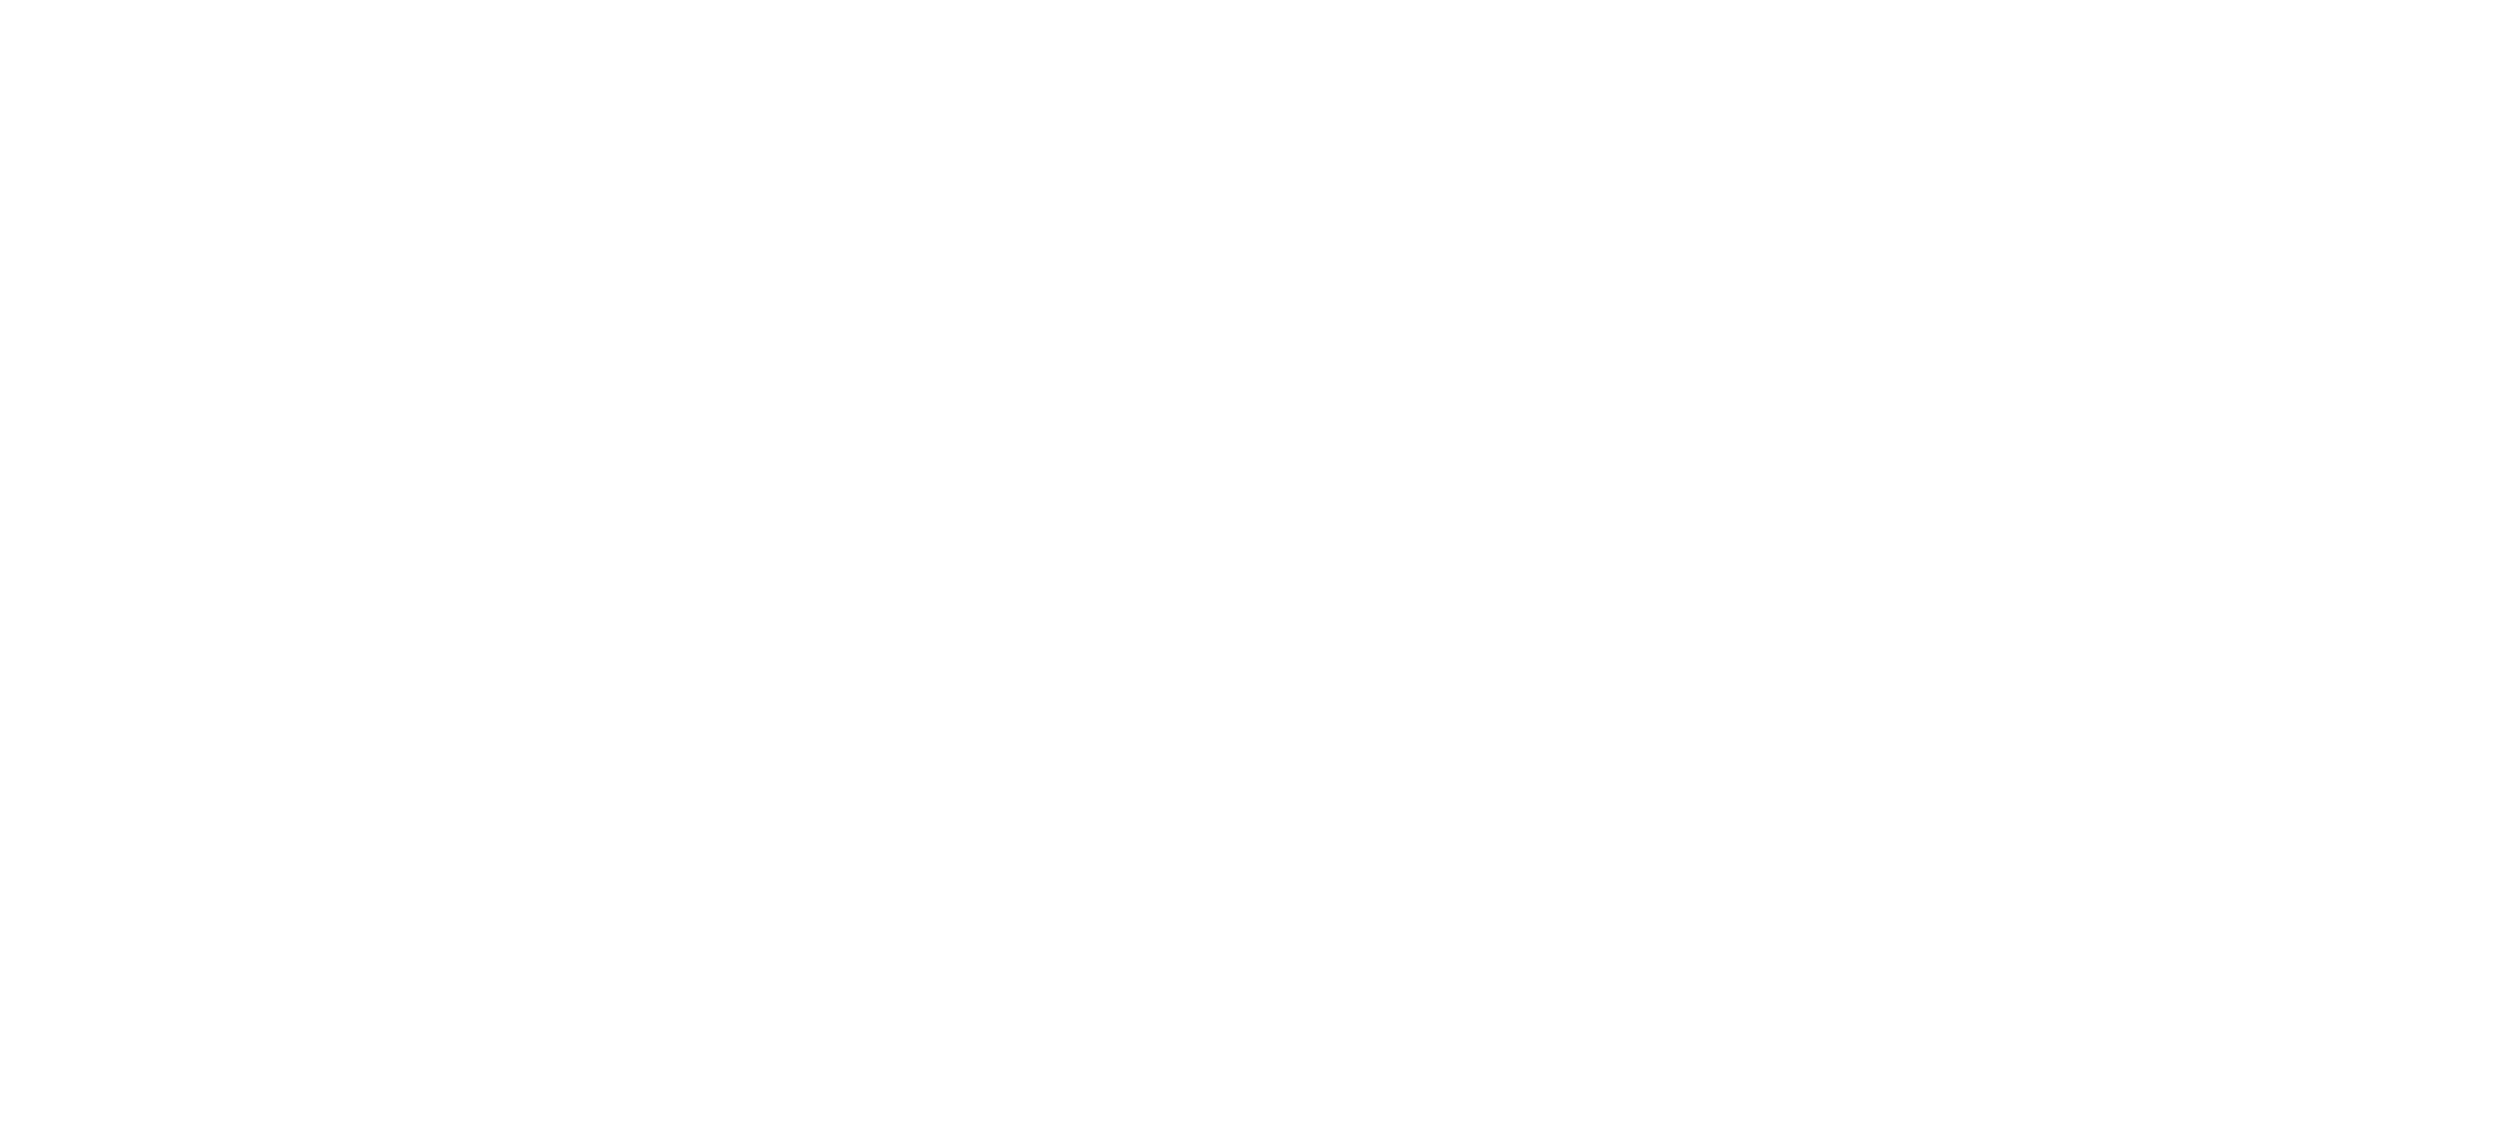 dram-reference-cables-logo